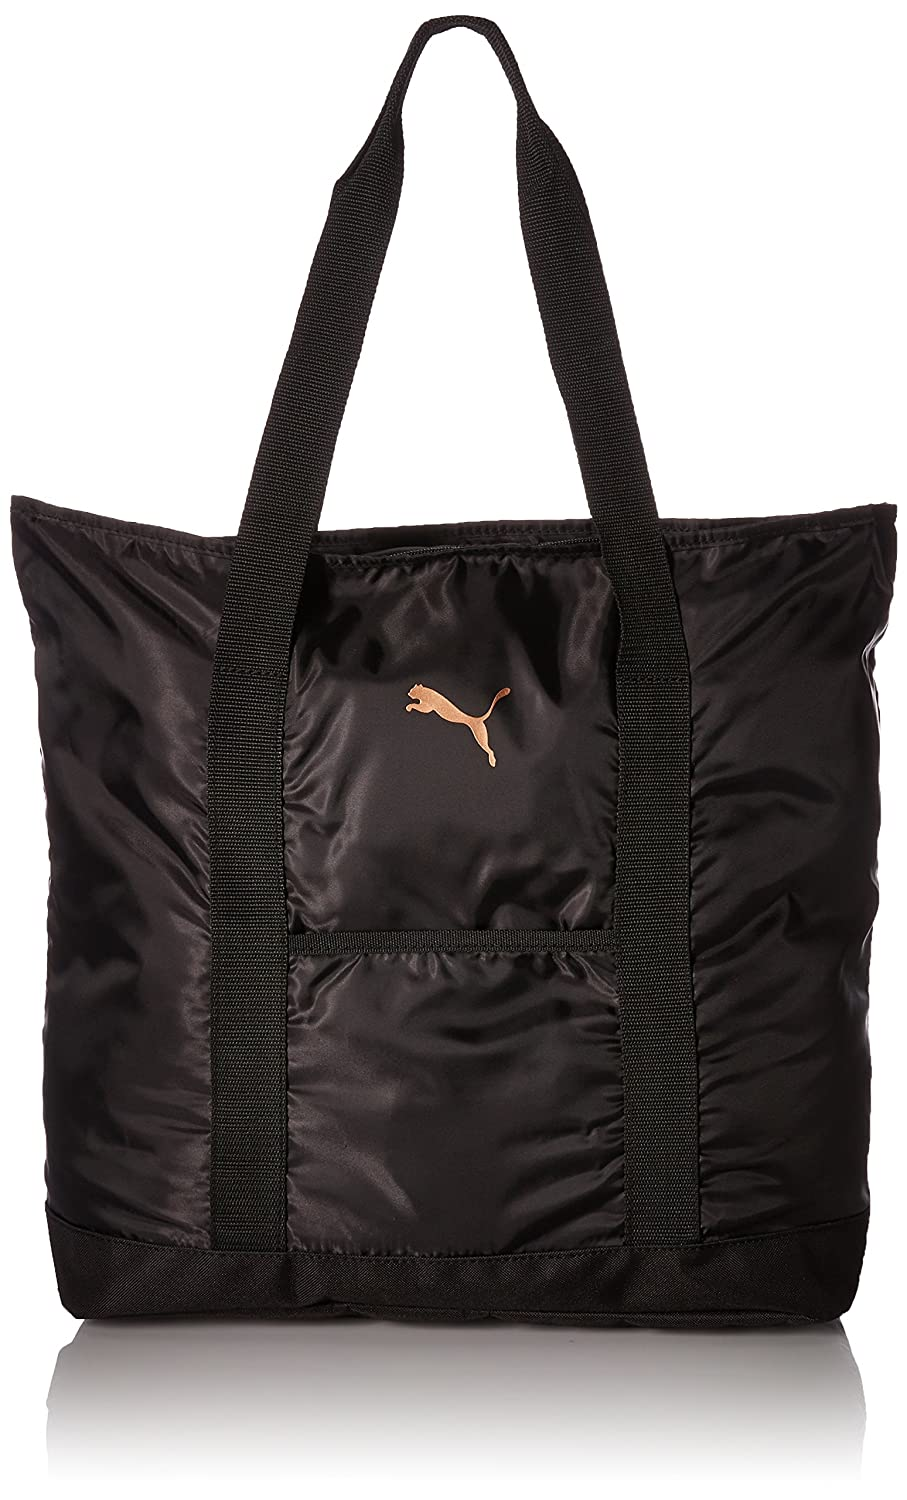 ca1f4295b0 Amazon.com  PUMA Women s Evercat Cambridge Tote